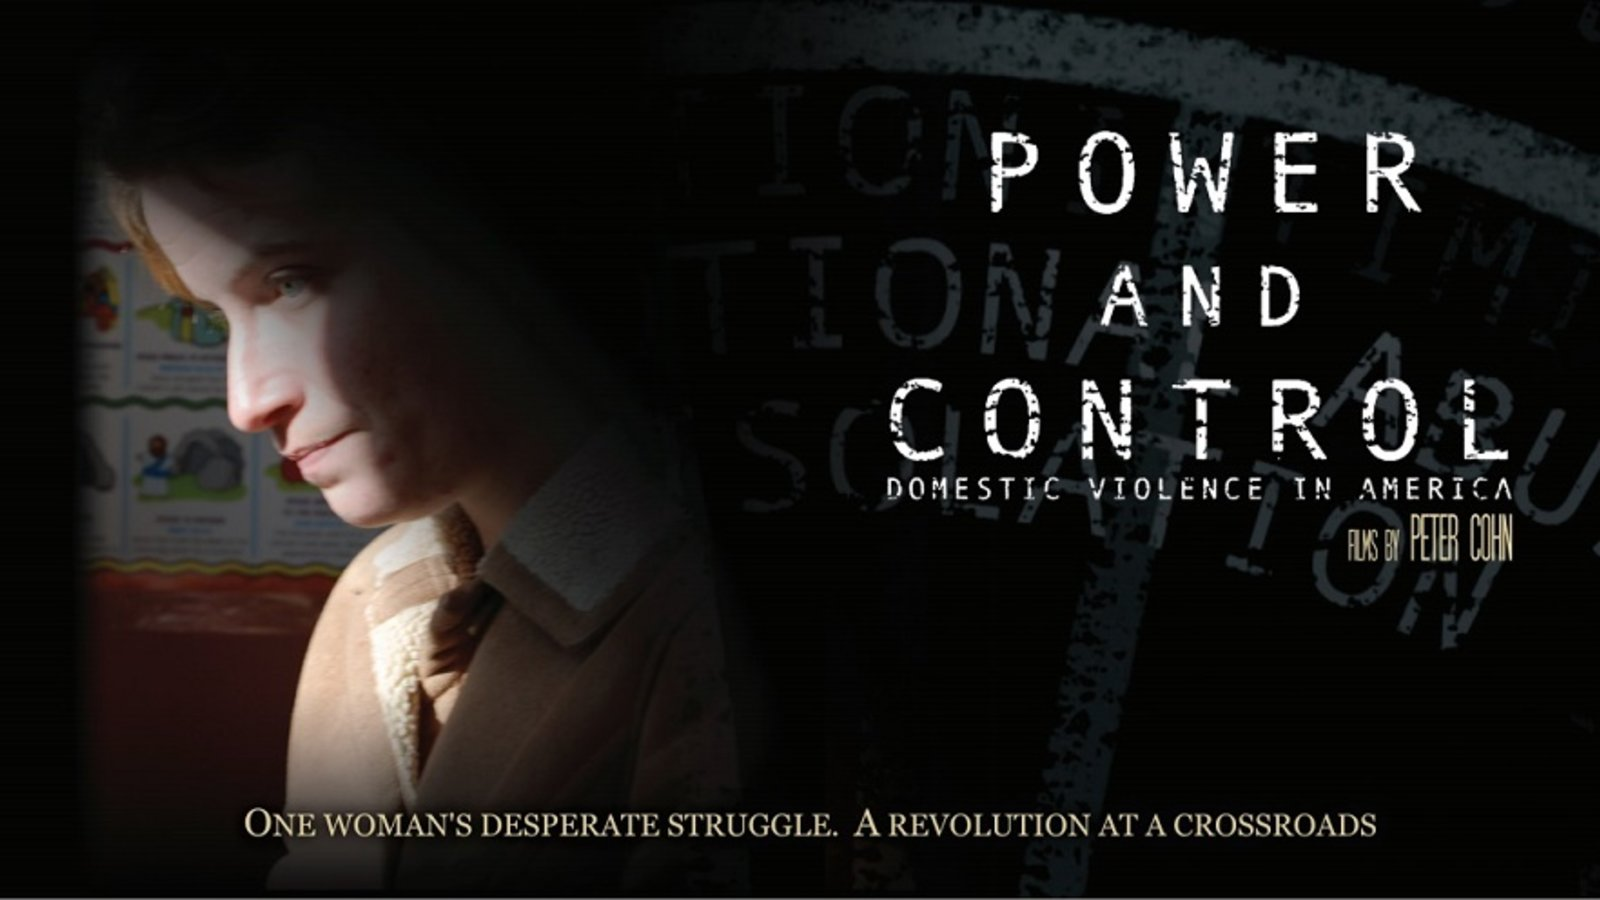 Power and Control - Domestic Violence in America